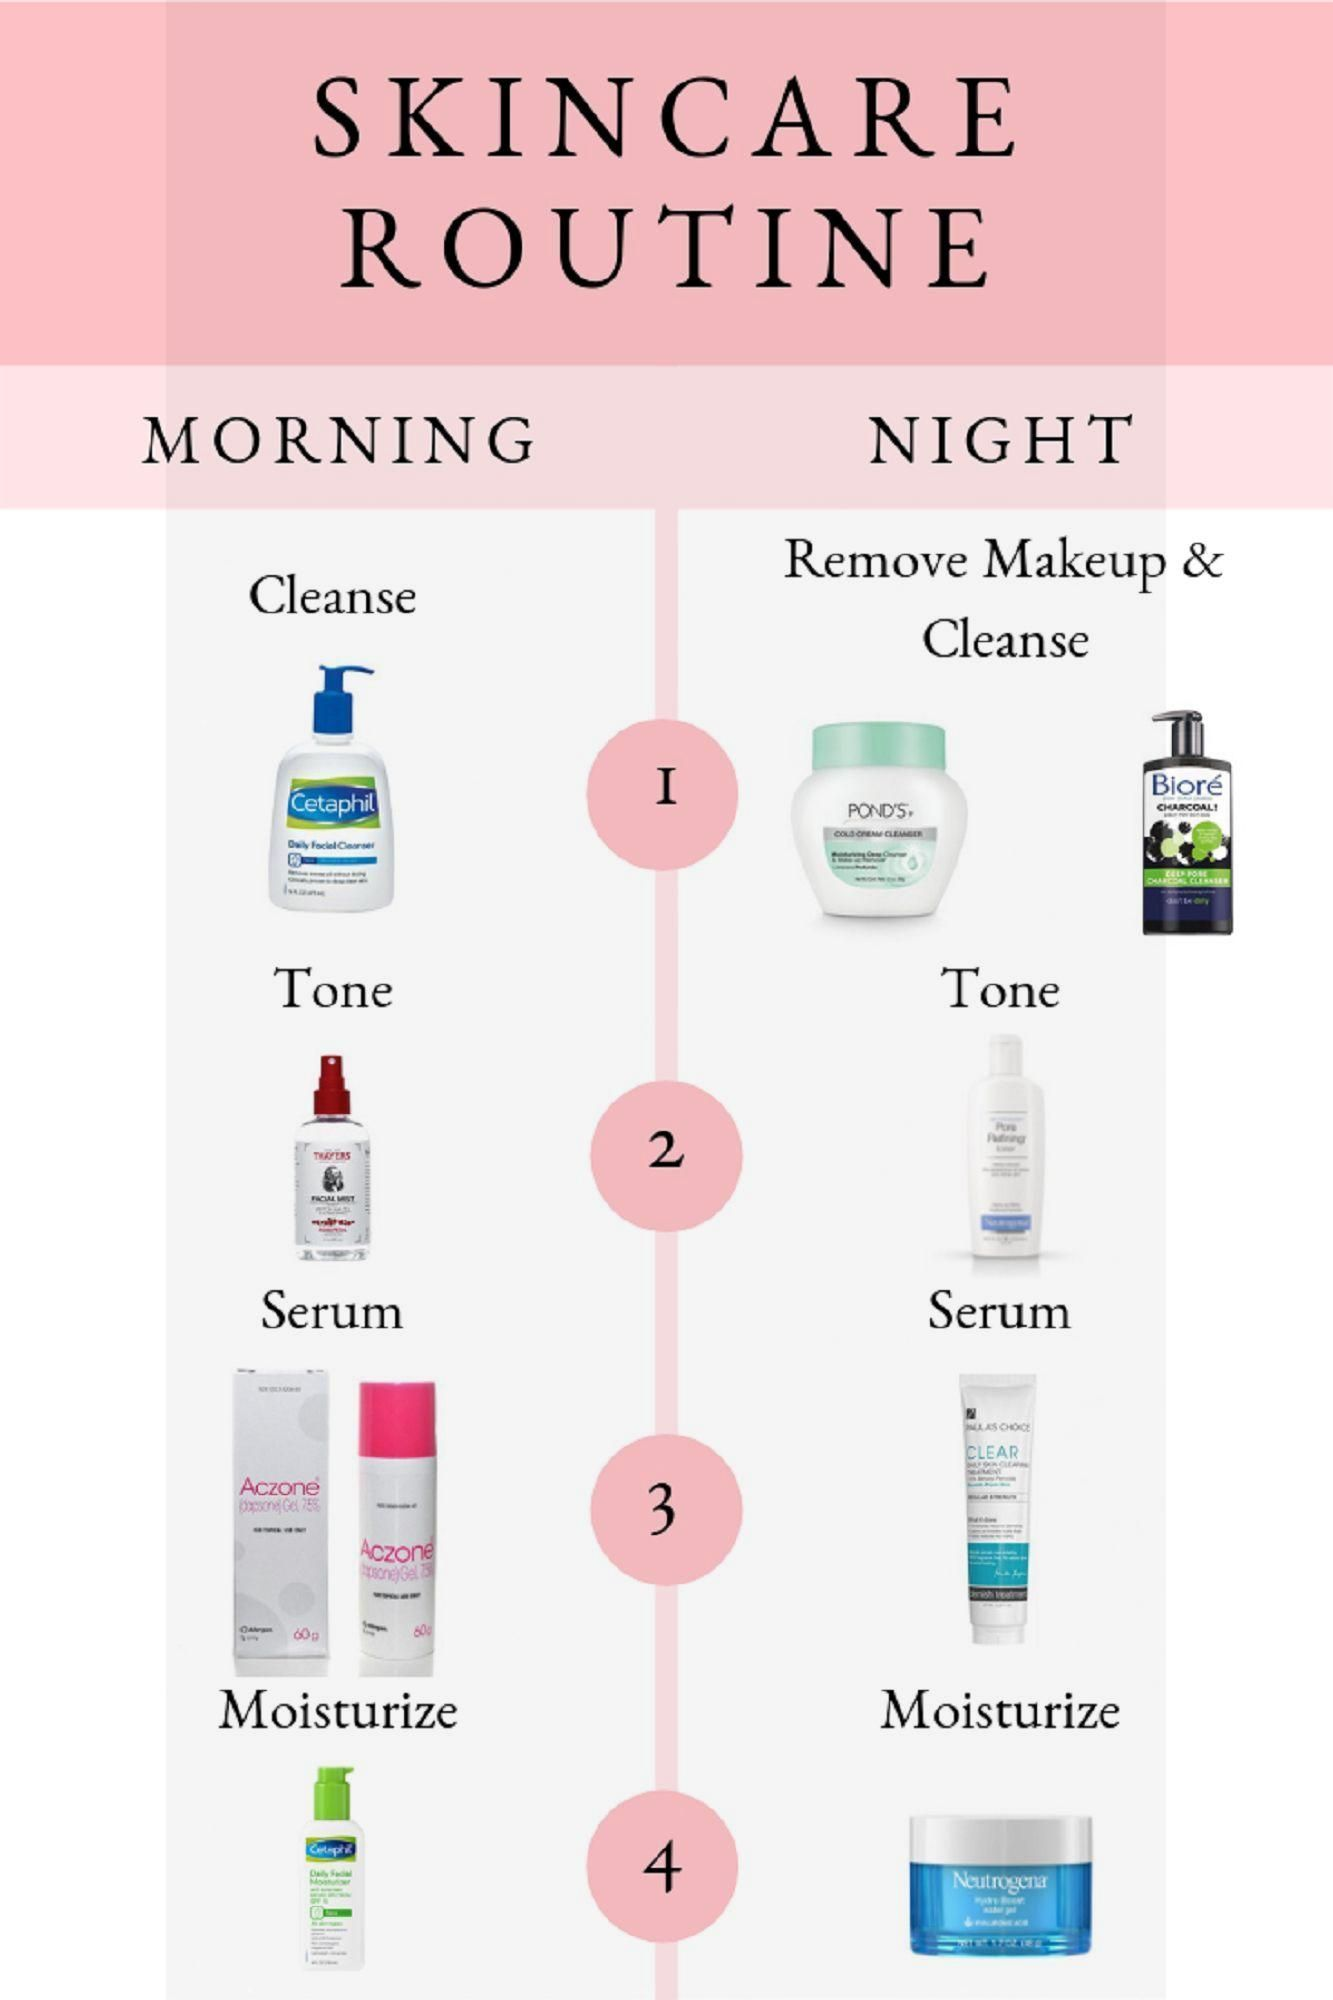 Daily Skincare Routine To Get You Going Beauty Care Routine Weekly Daily Products Routine Skin Care Guide Skin Care Routine Steps Night Skin Care Routine